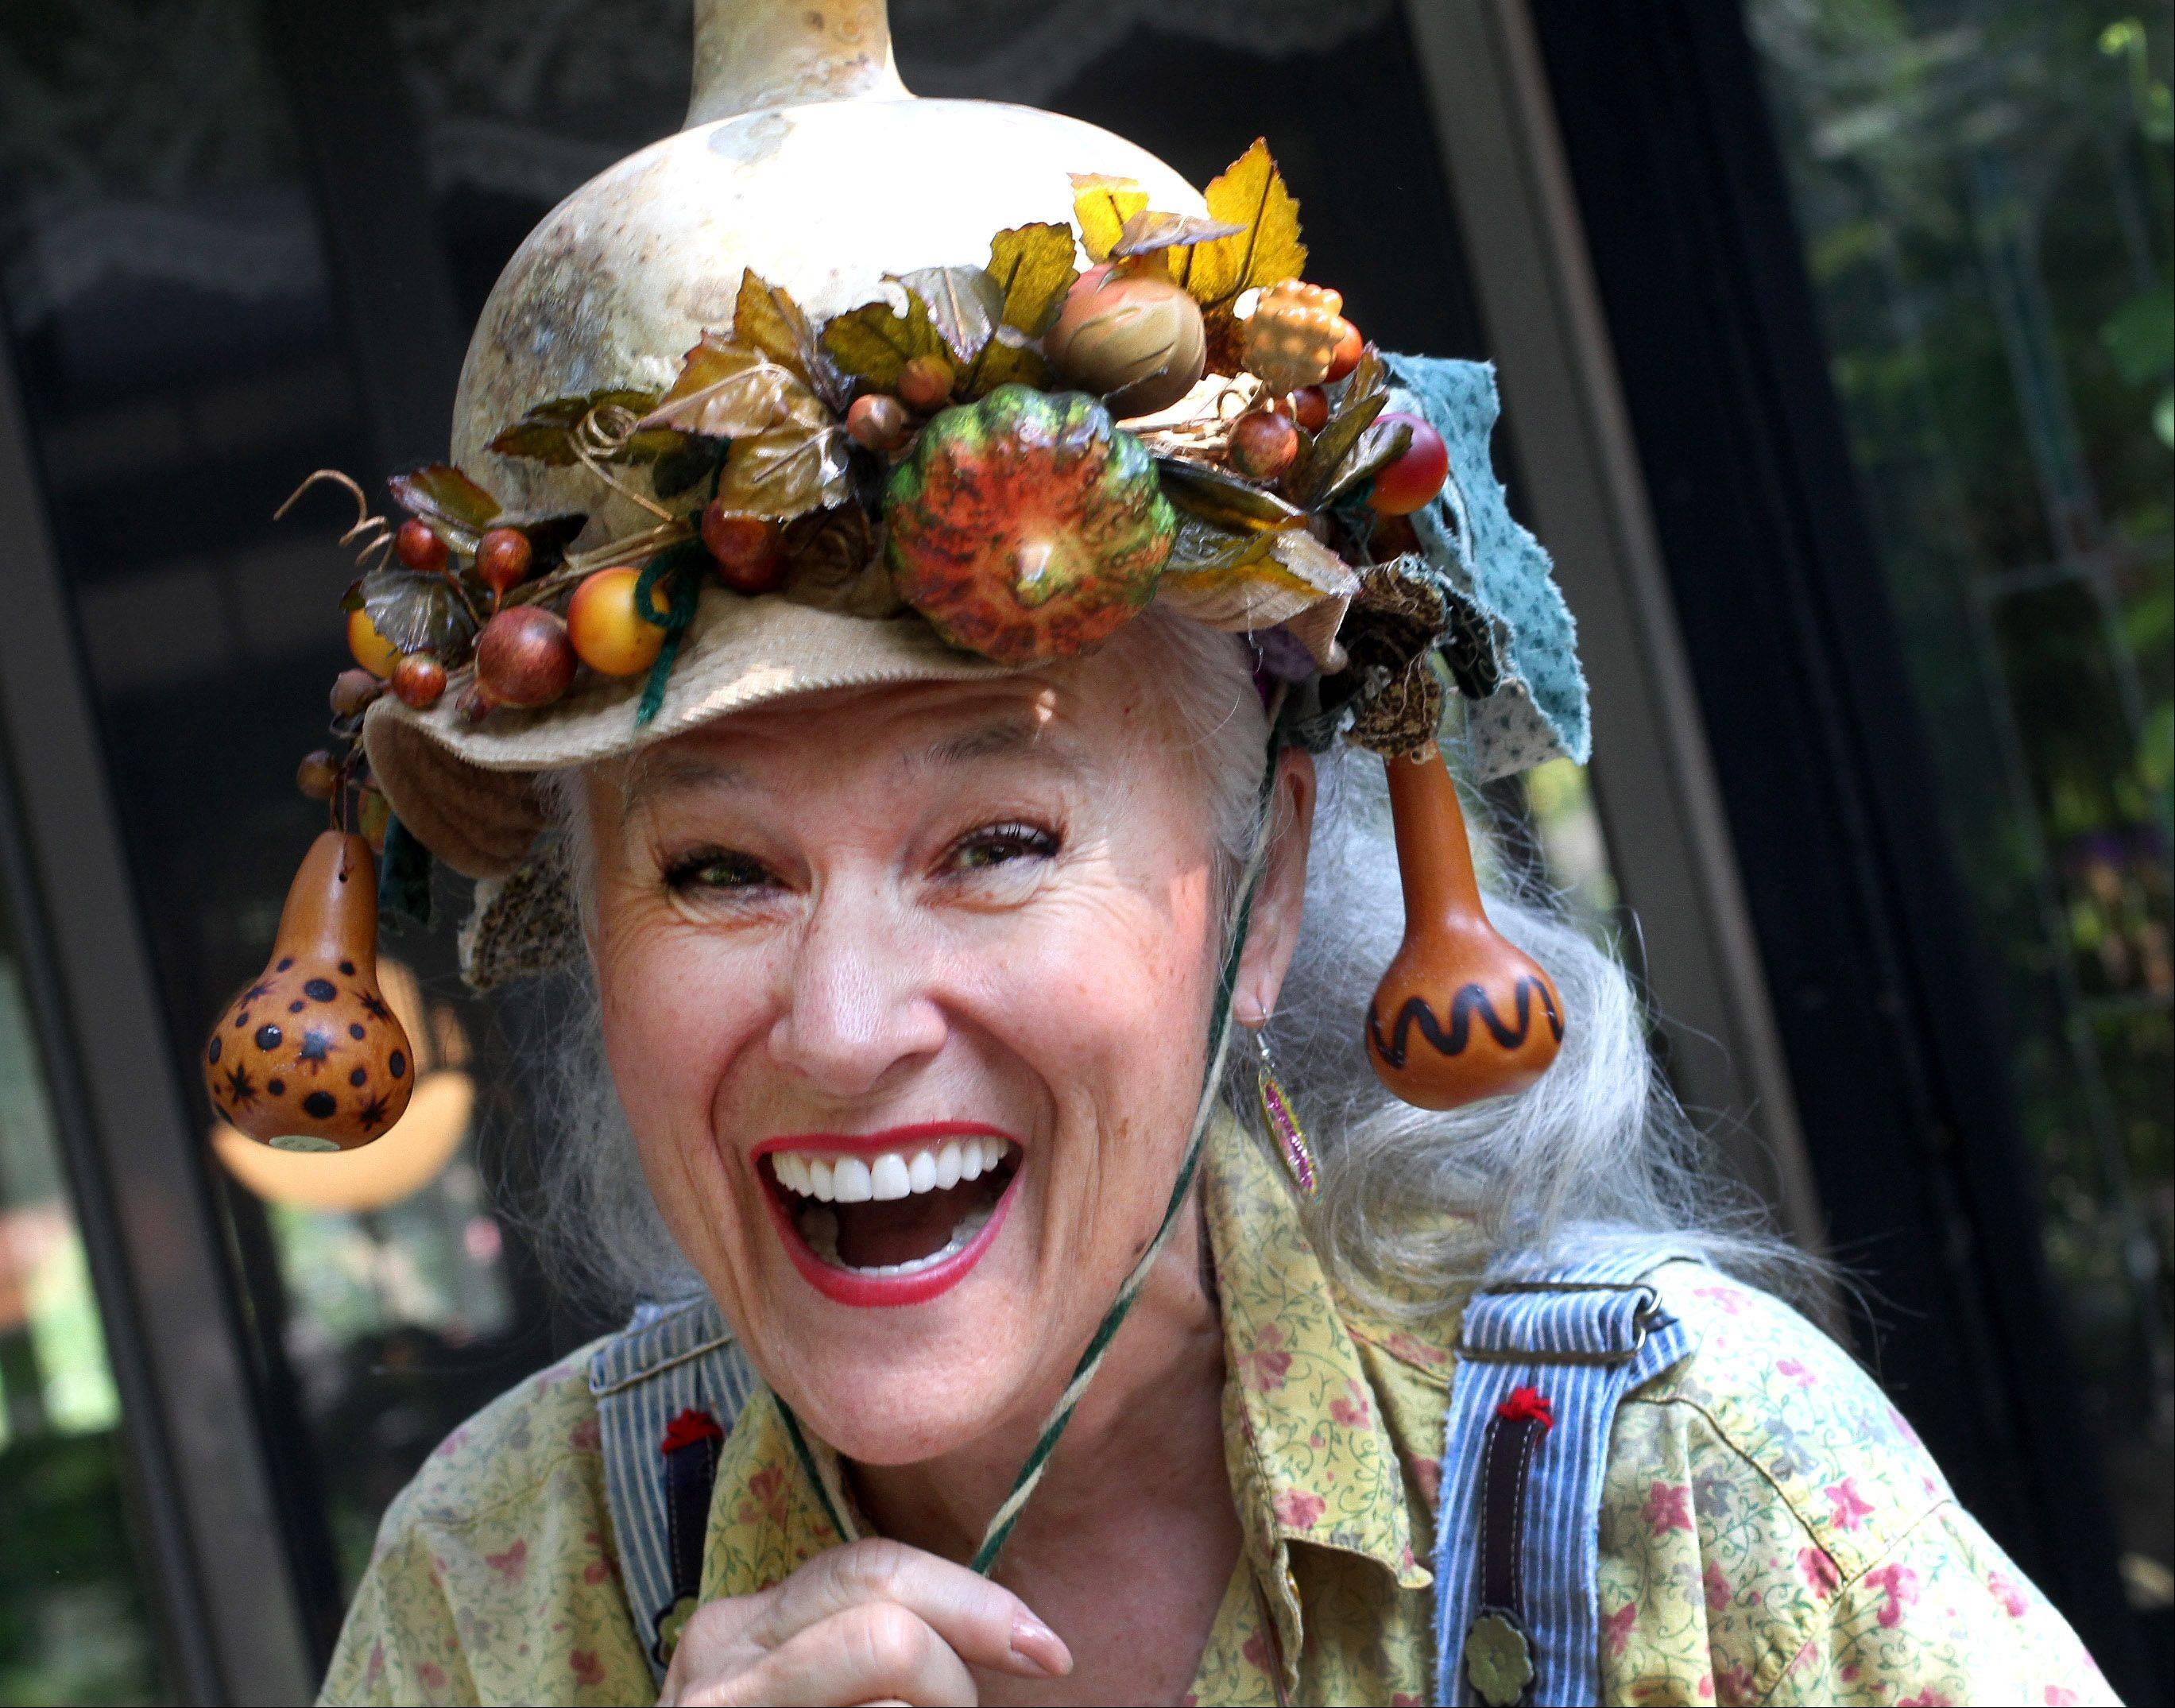 Carolyn Lauing-Finzer of Naperville describes herself as fun and eclectic. Here she dons a gourd hat.